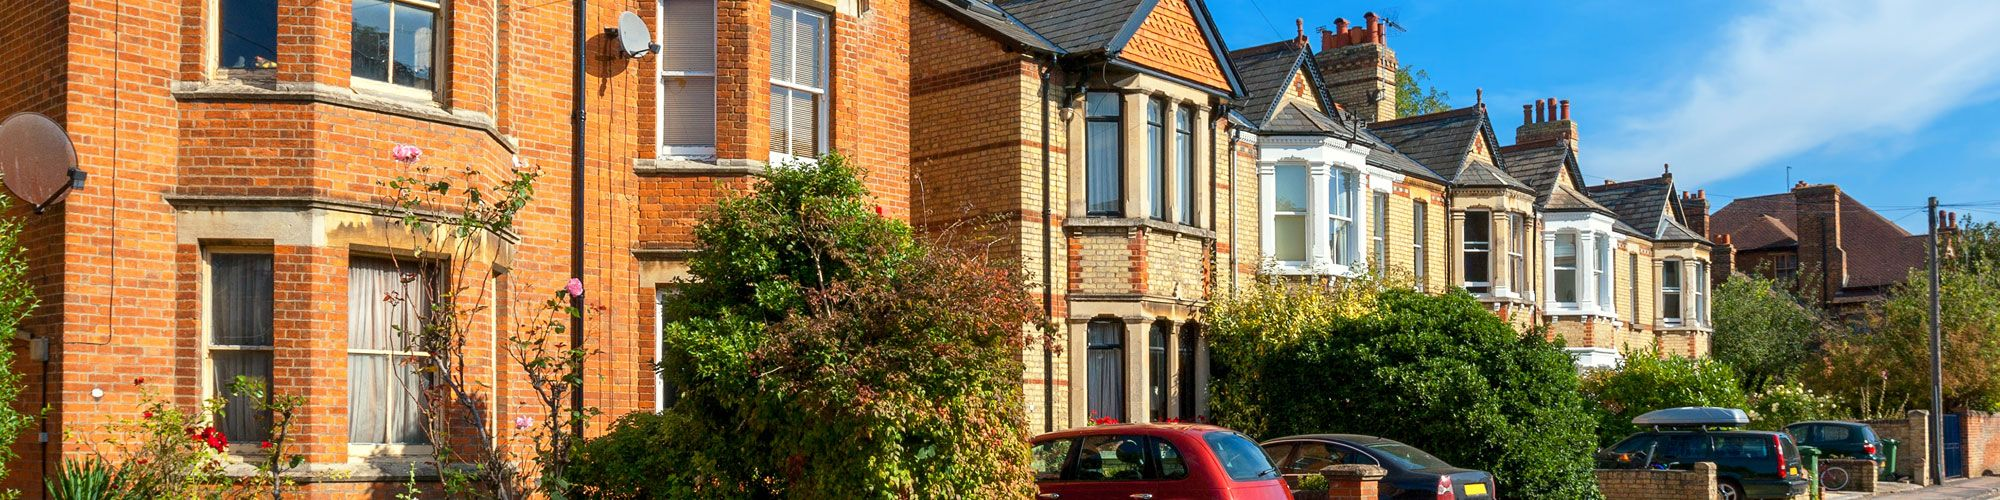 Apartments for rent near Chester